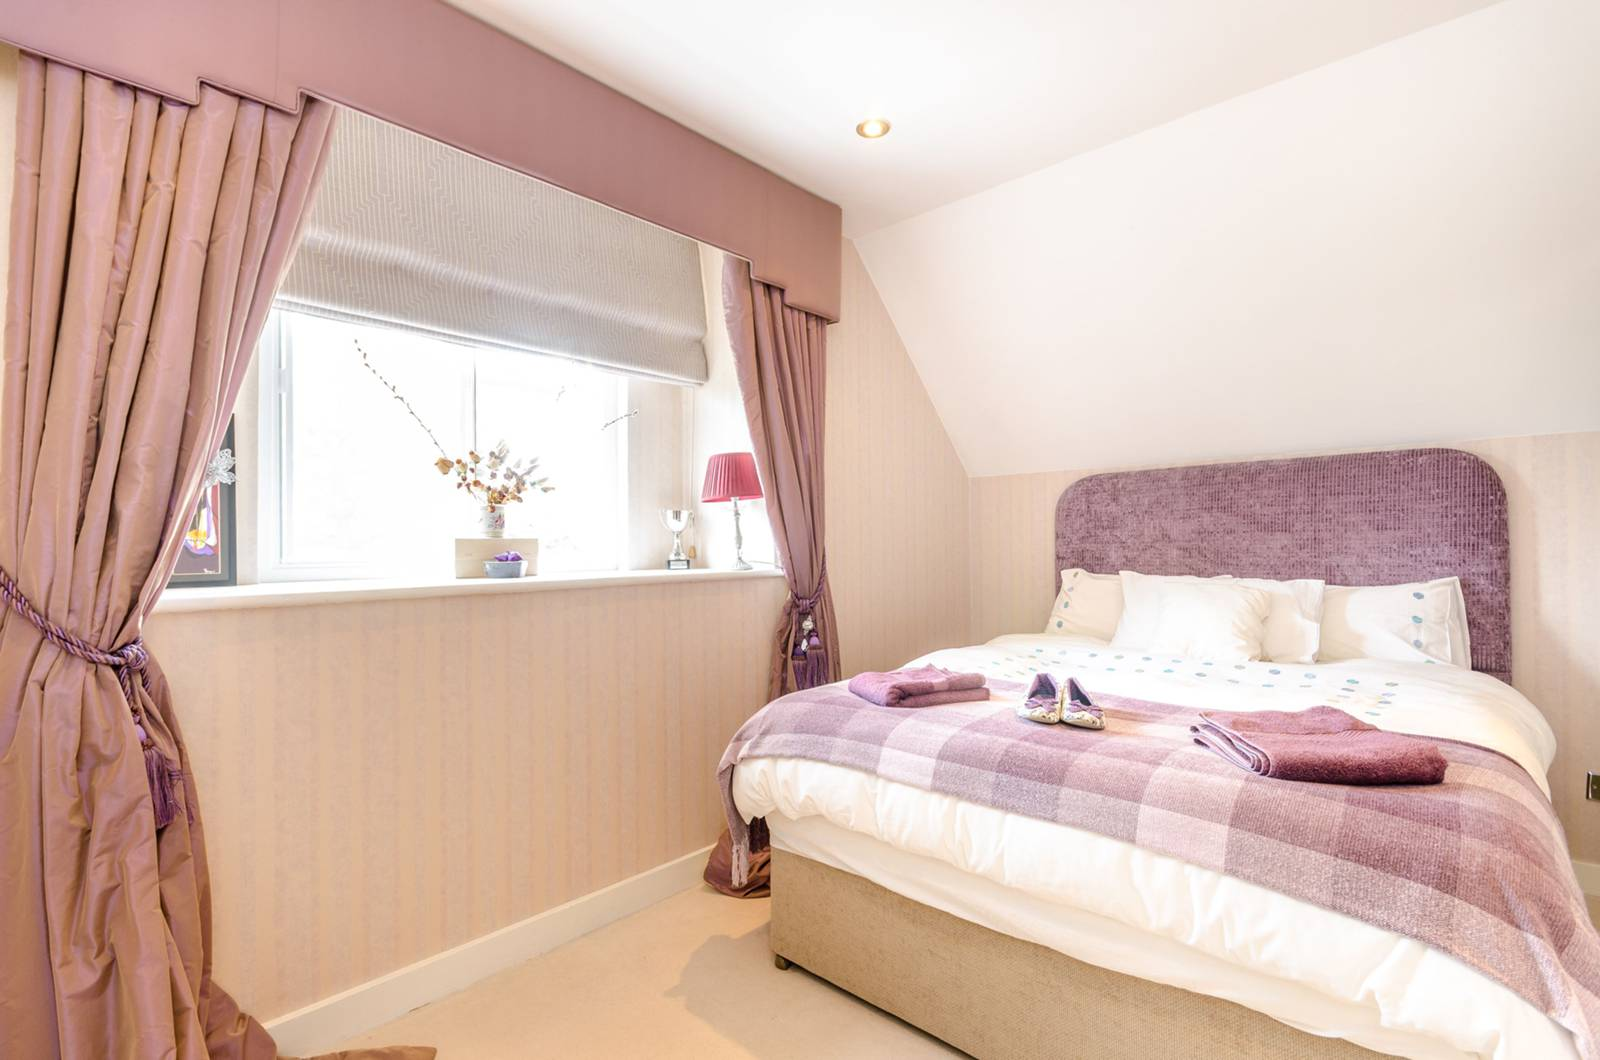 2 Bedroom Flat For Sale In Beckenham Place Park Beckenham Br3 London